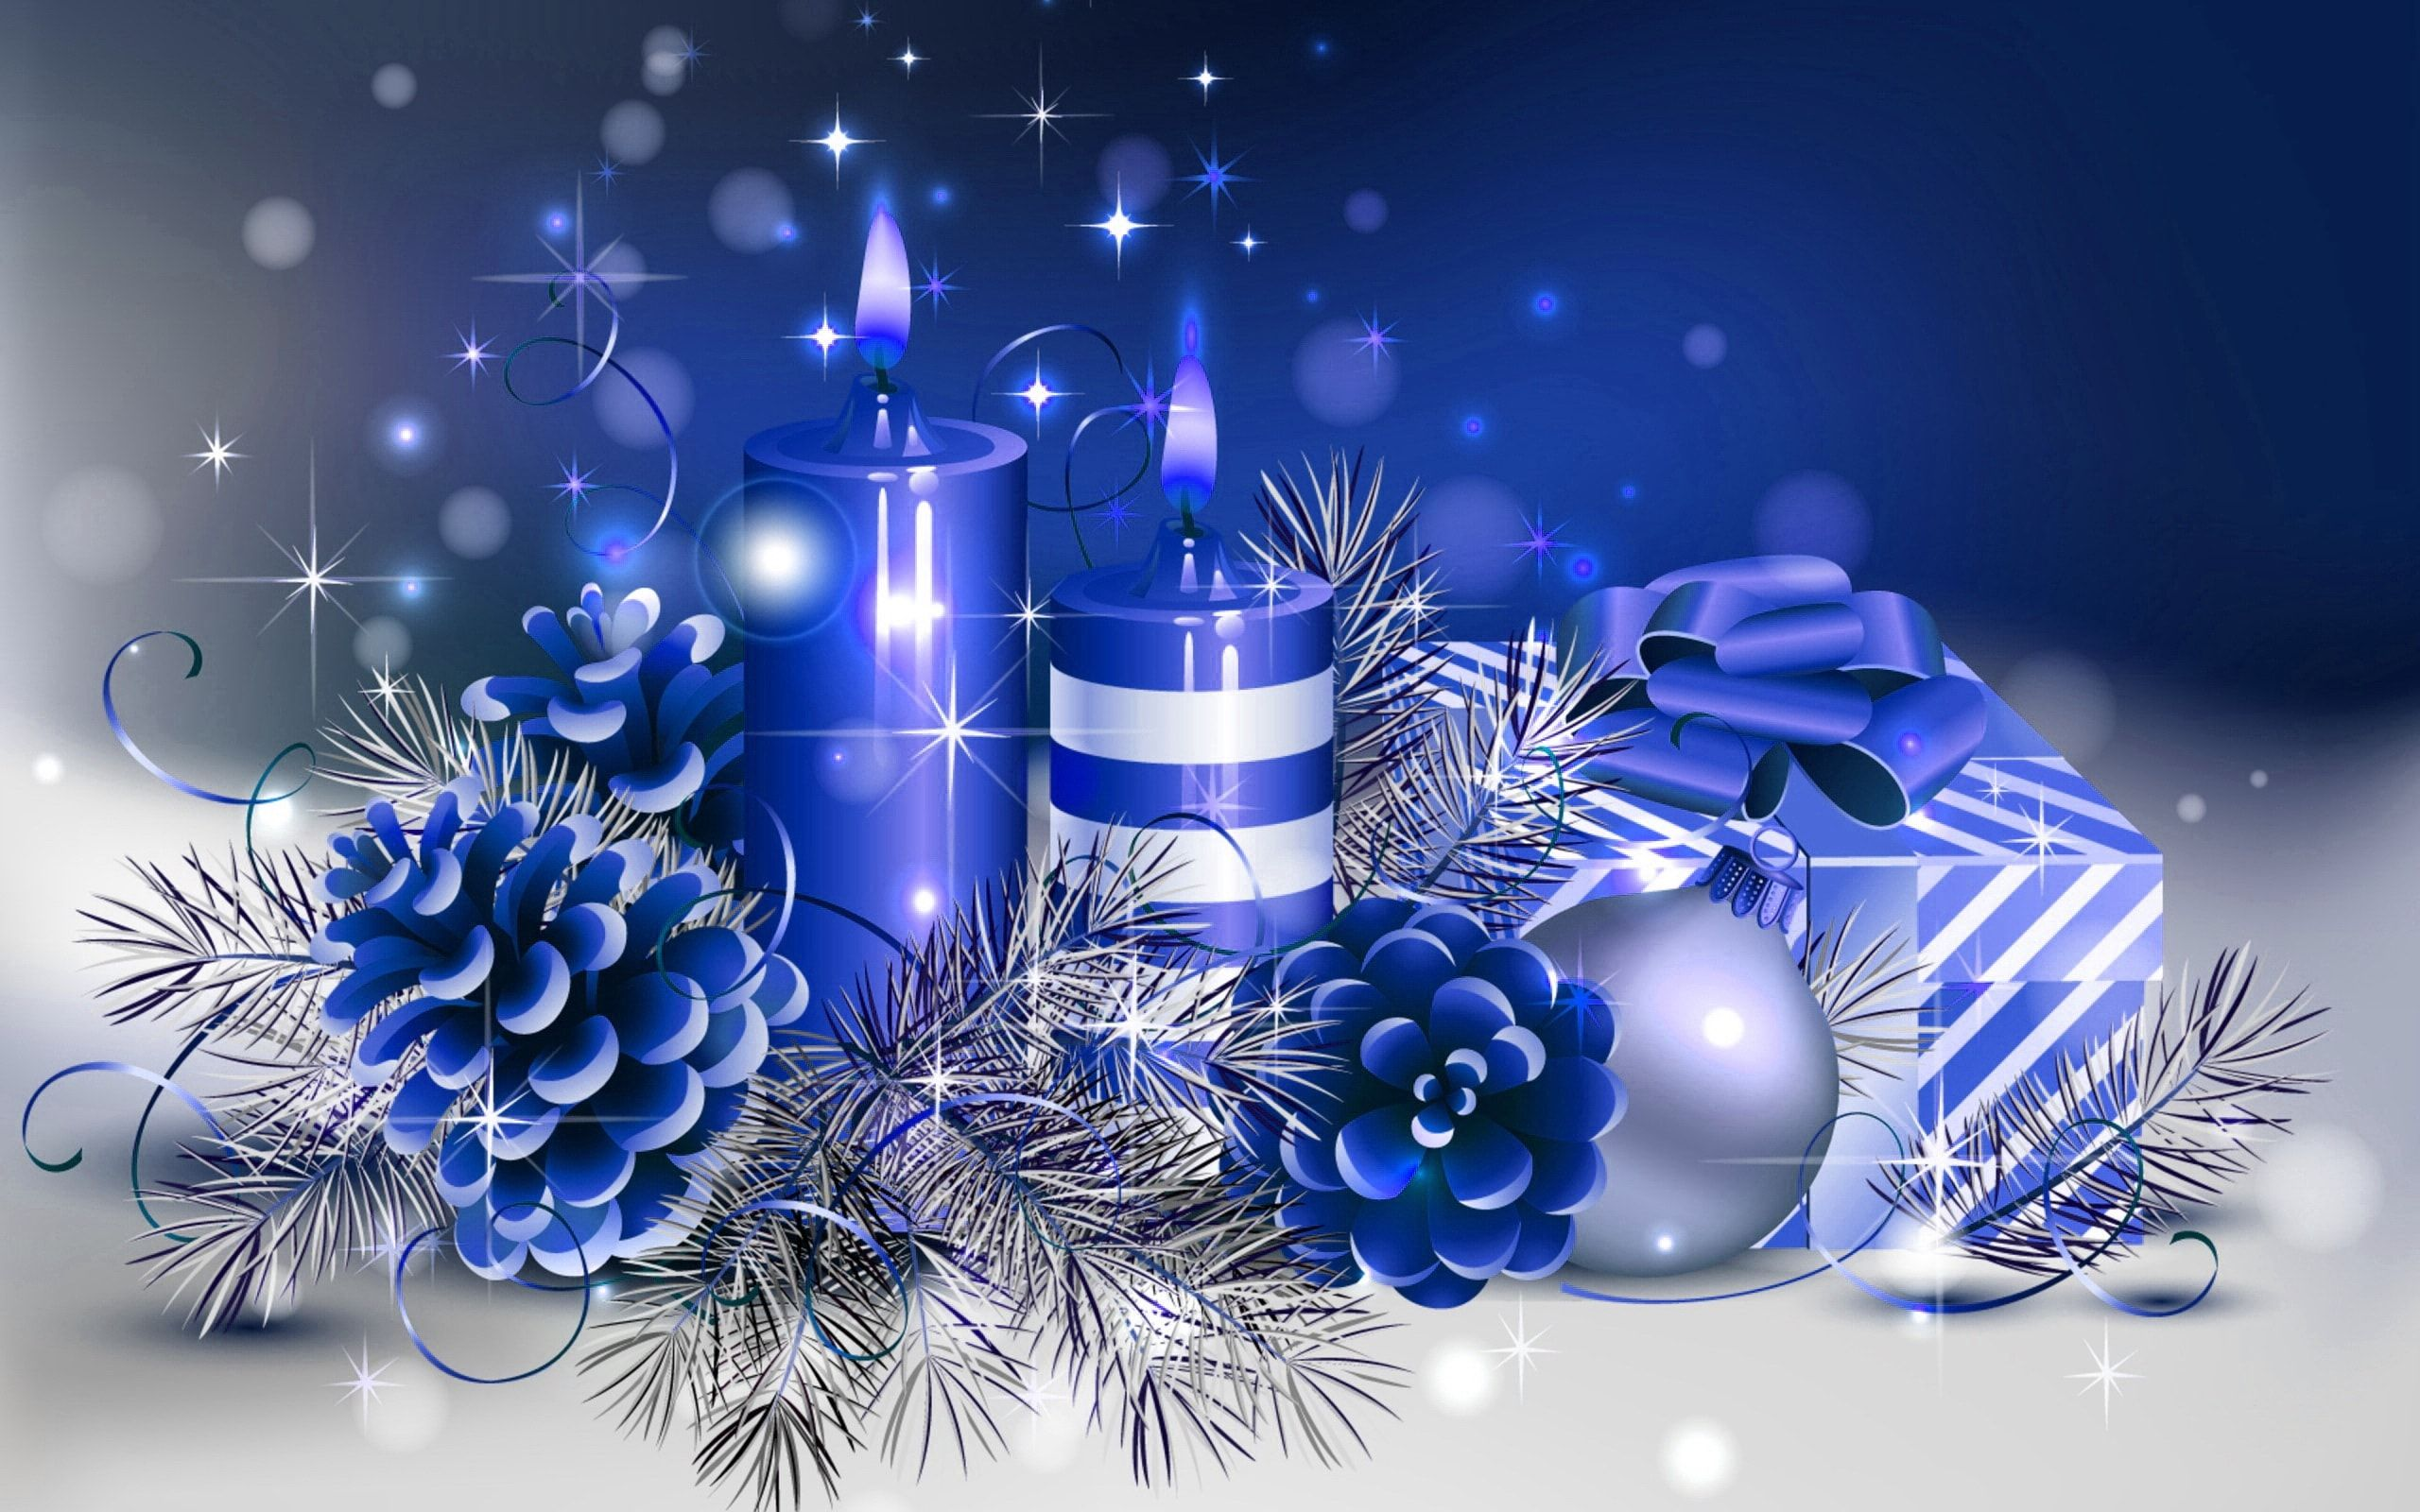 72 Best Free Christmas Pc Wallpapers Wallpaperaccess